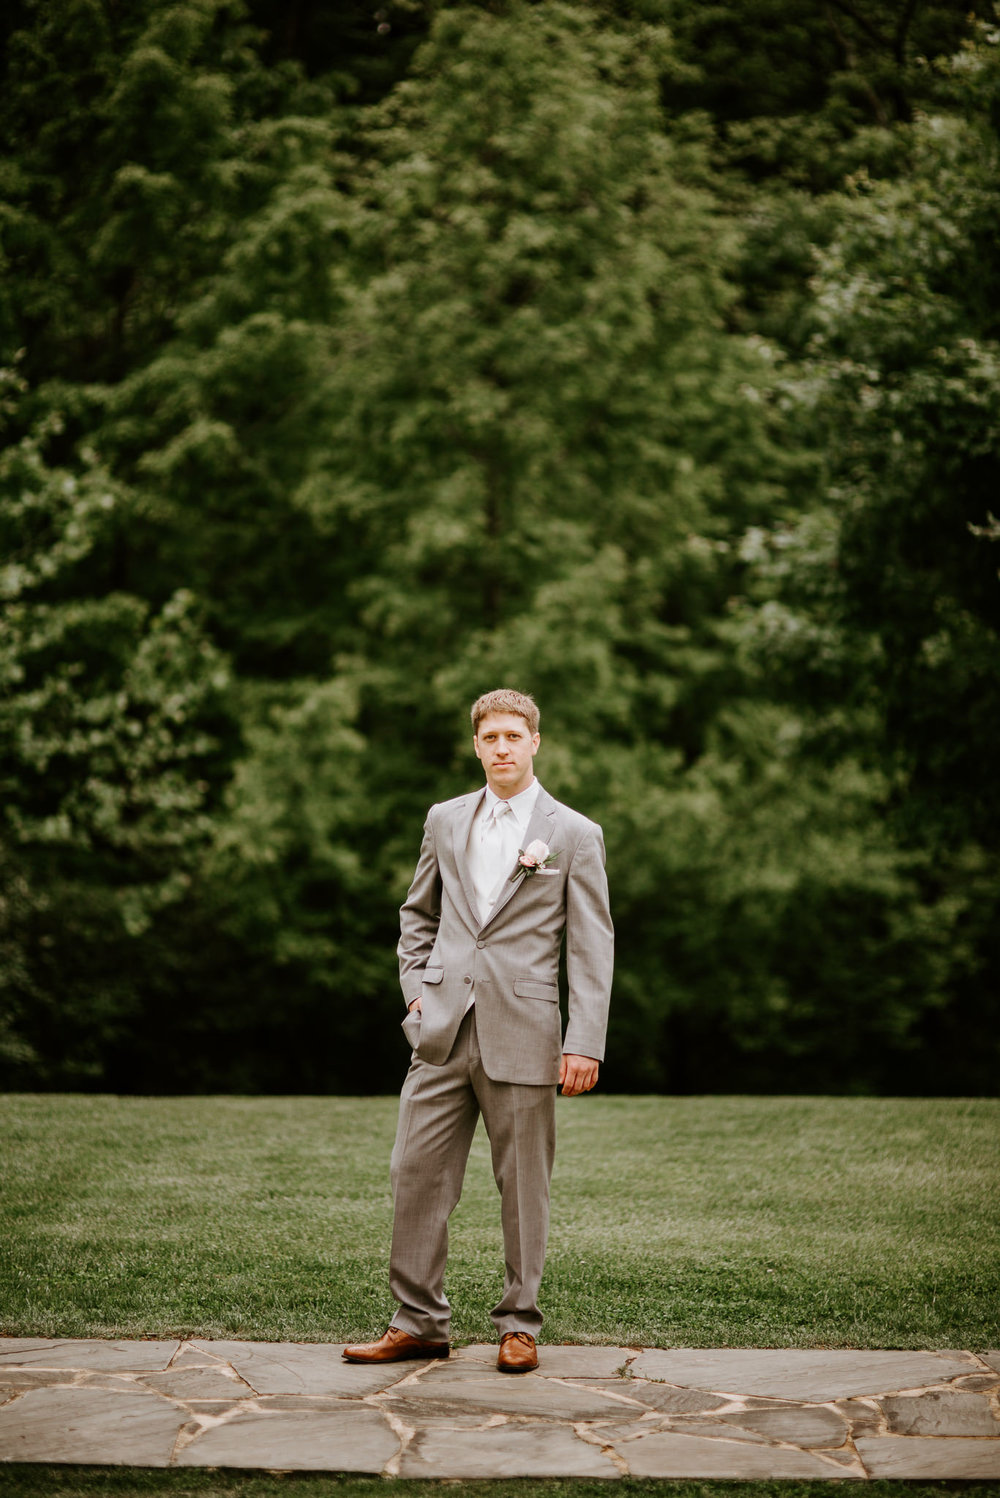 House Mountain Inn - Weddings - Lexington - Virginia - Best Wedding Photographer - Pat Cori Photography-52.jpg